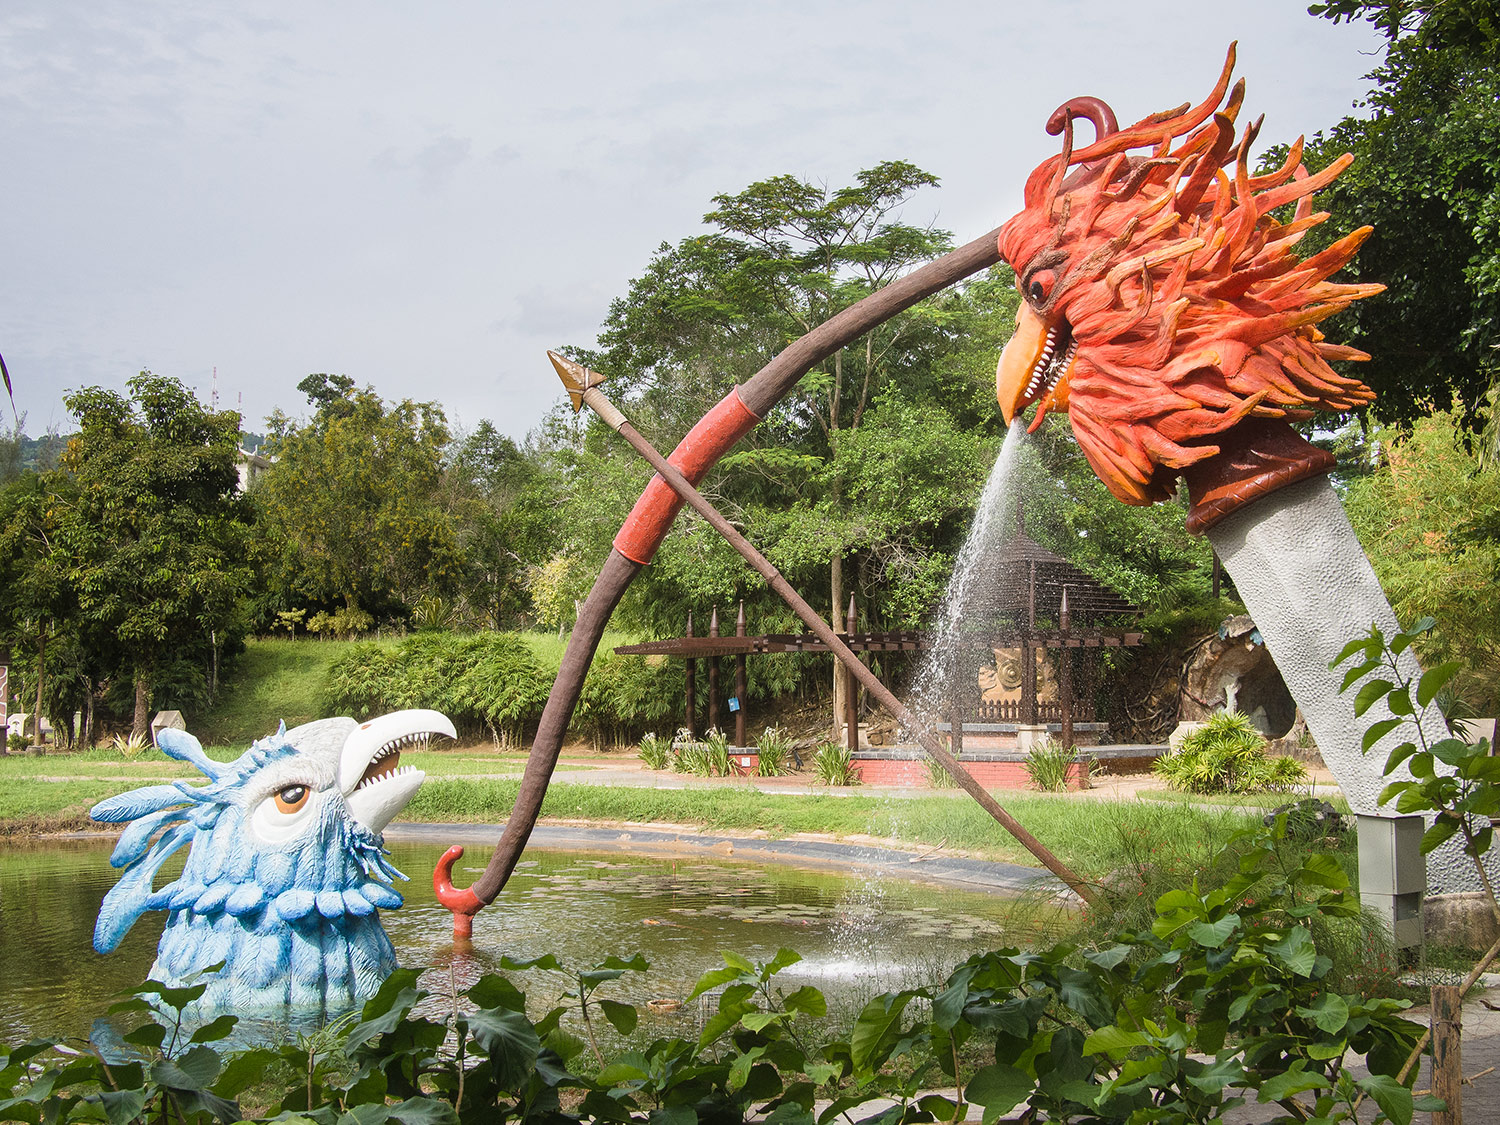 Strange creatures in the park at Kuah